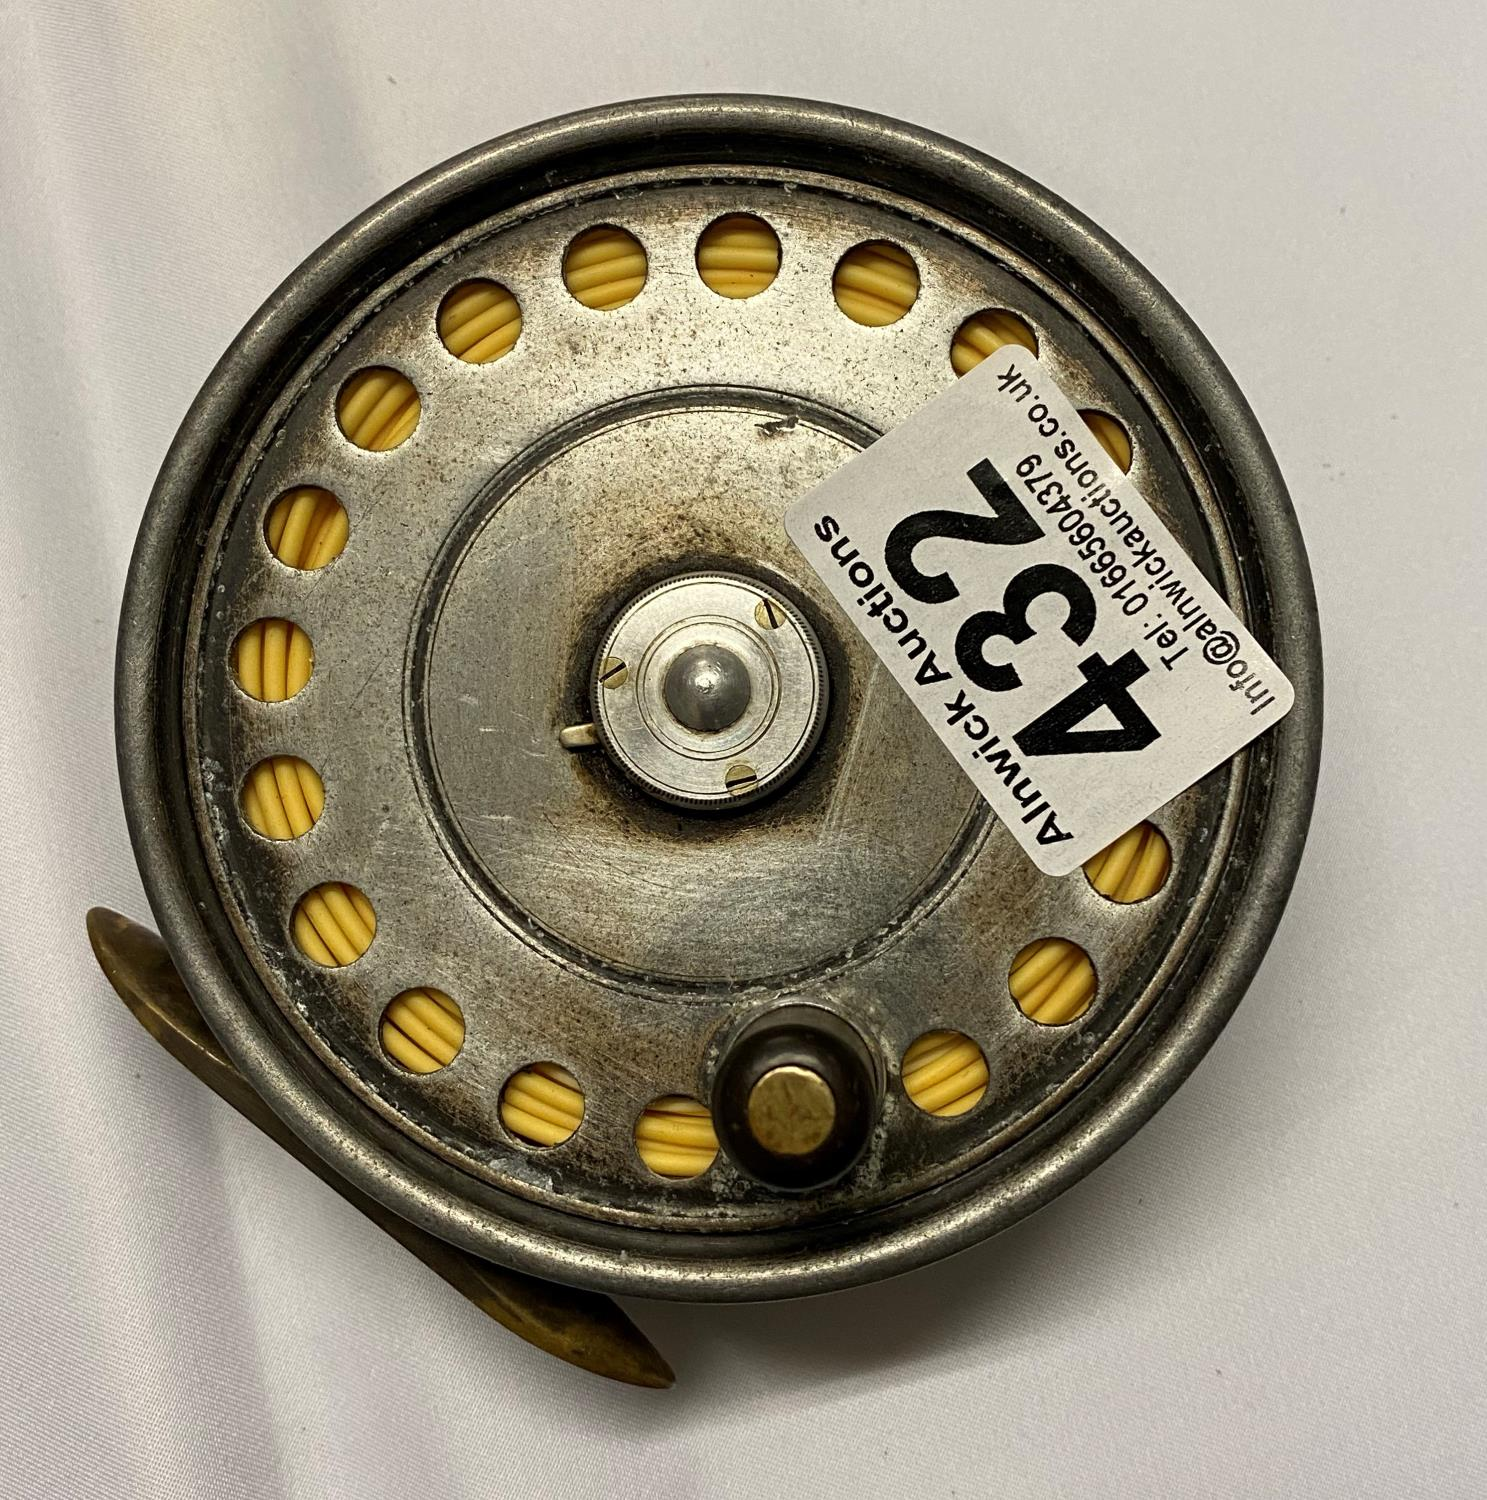 Lot 432 - Hardy's St. John reel size 3 and 7/8ths